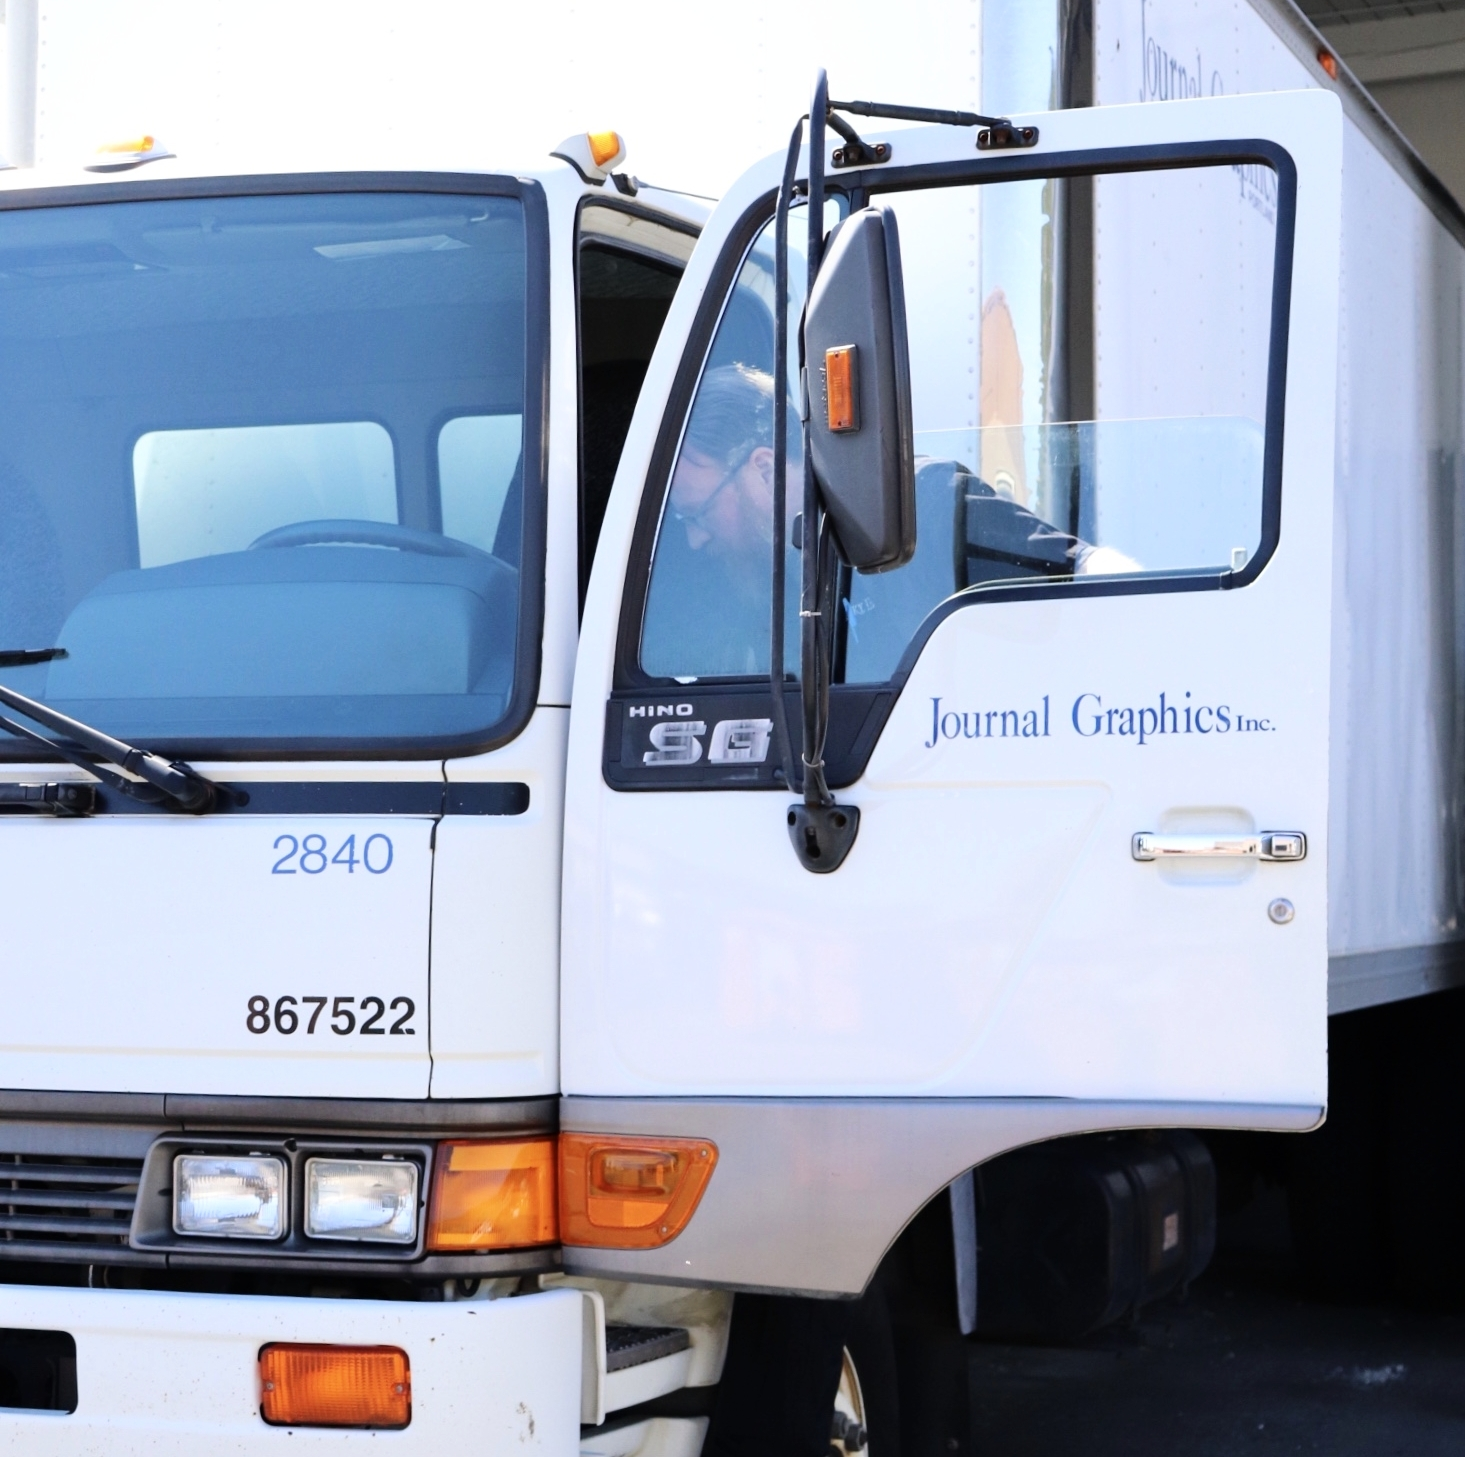 Mailing Services - Our location allows Journal Graphics to make deliveries within approximately two business days. Our logistics specialists evaluate your project's delivery requirements to determine the most timely and cost-effective shipping solution.Give us a call for a complete list of mailing services!